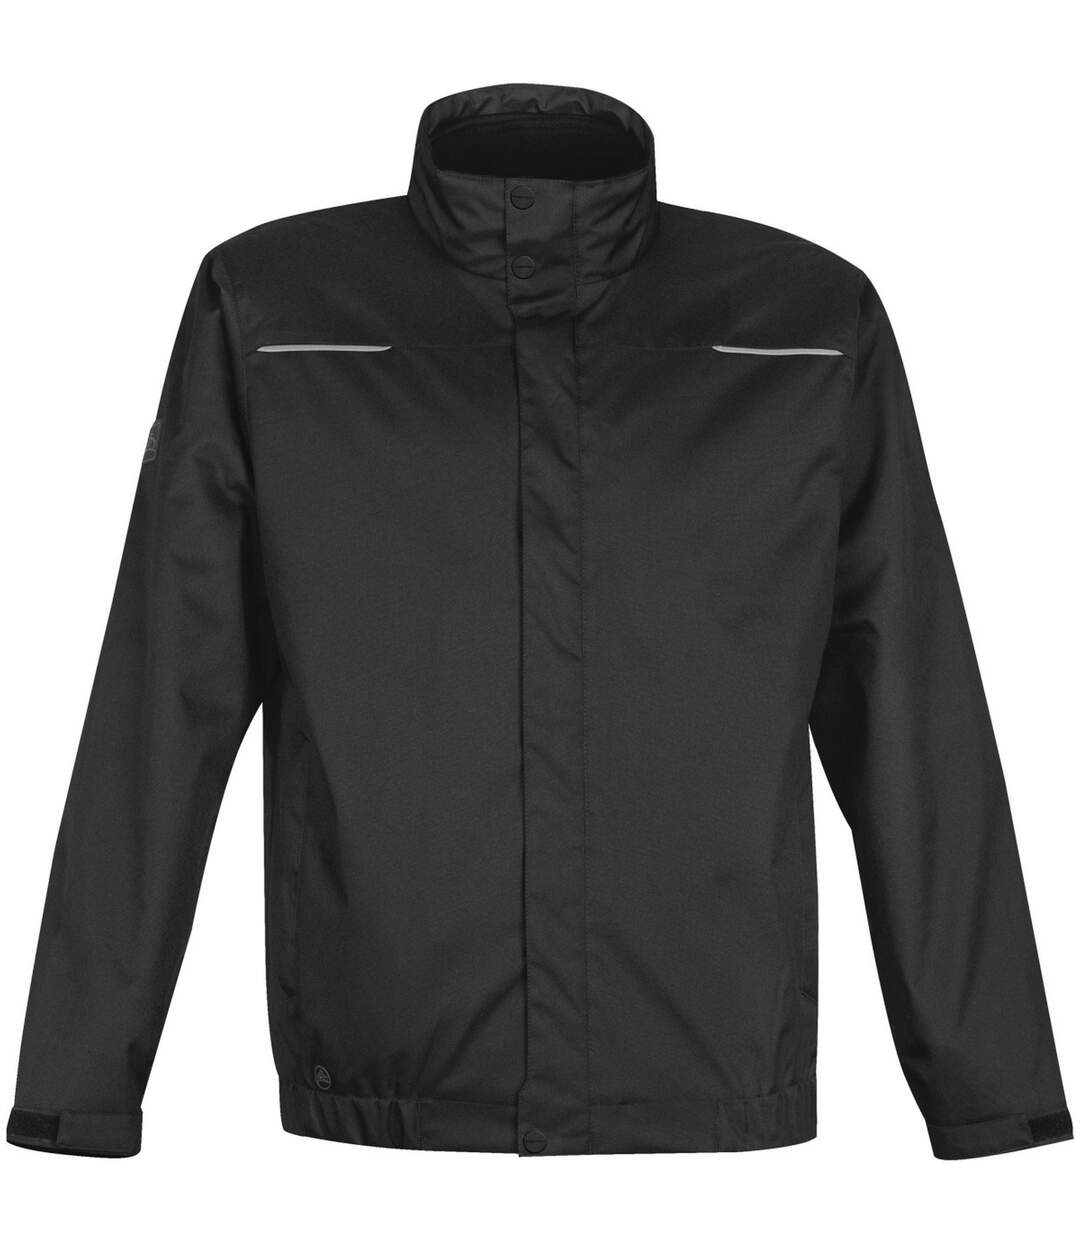 Stormtech Mens Polar HD 3-in-1 System Jacket (Black) - UTBC3895